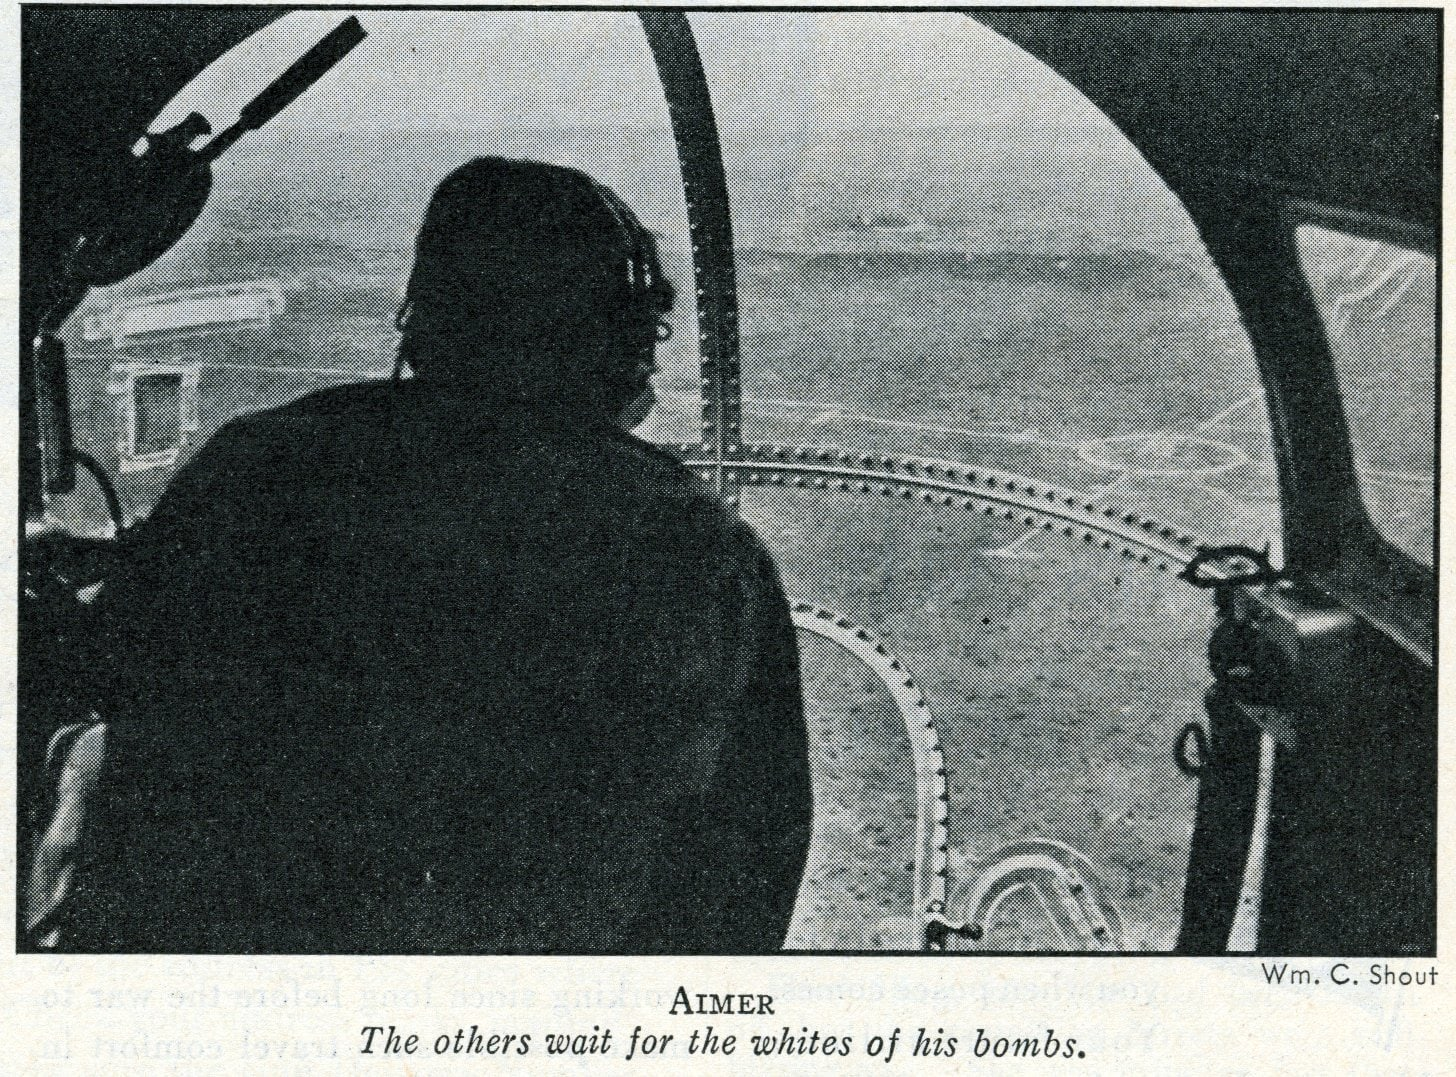 View from front of a B-17 Flying Fortress planes (1943)